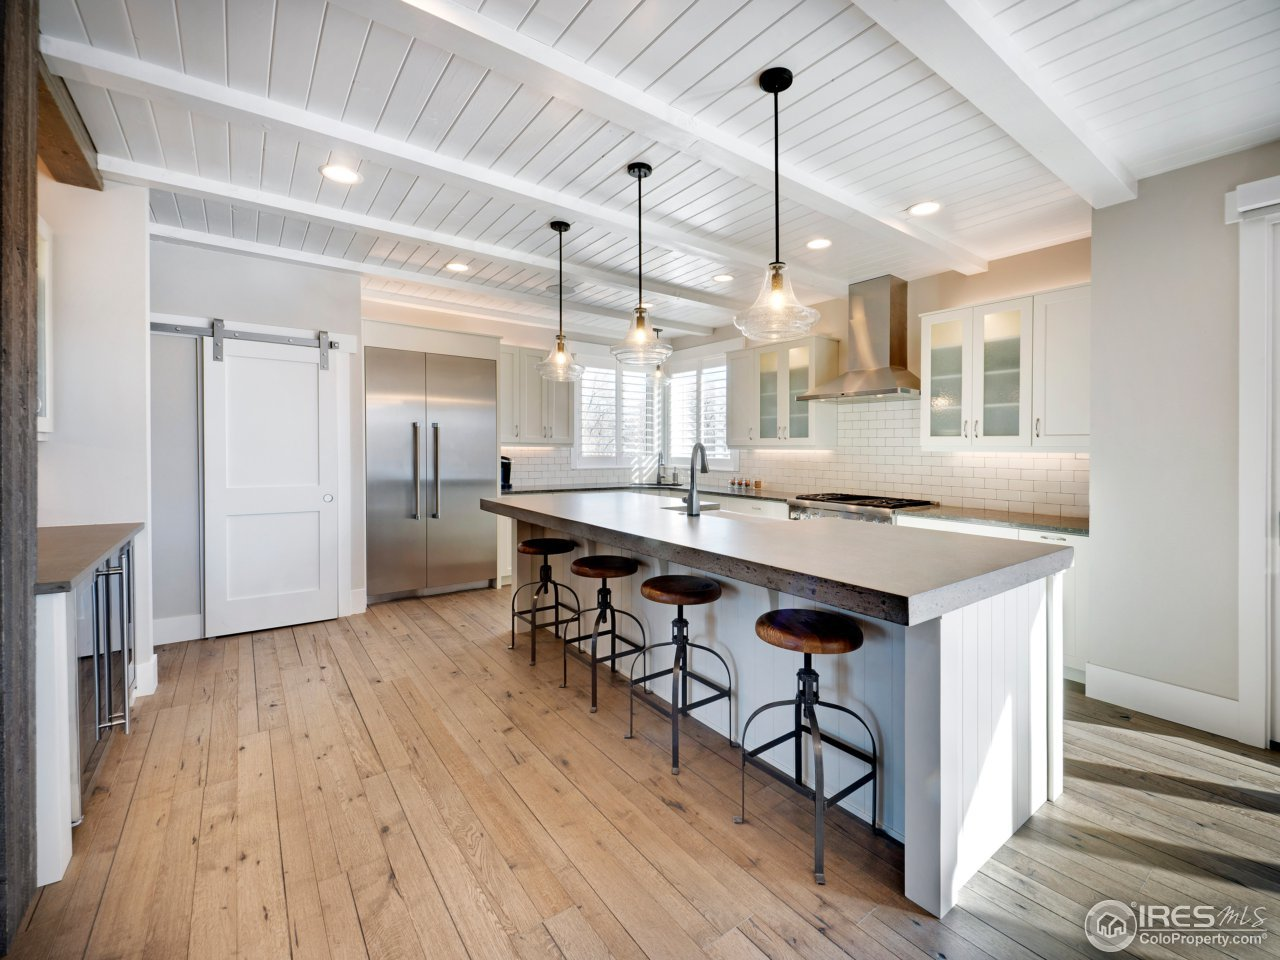 Listing: 768 Harts Gardens Ln, Fort Collins, CO.| MLS# 841169 ...